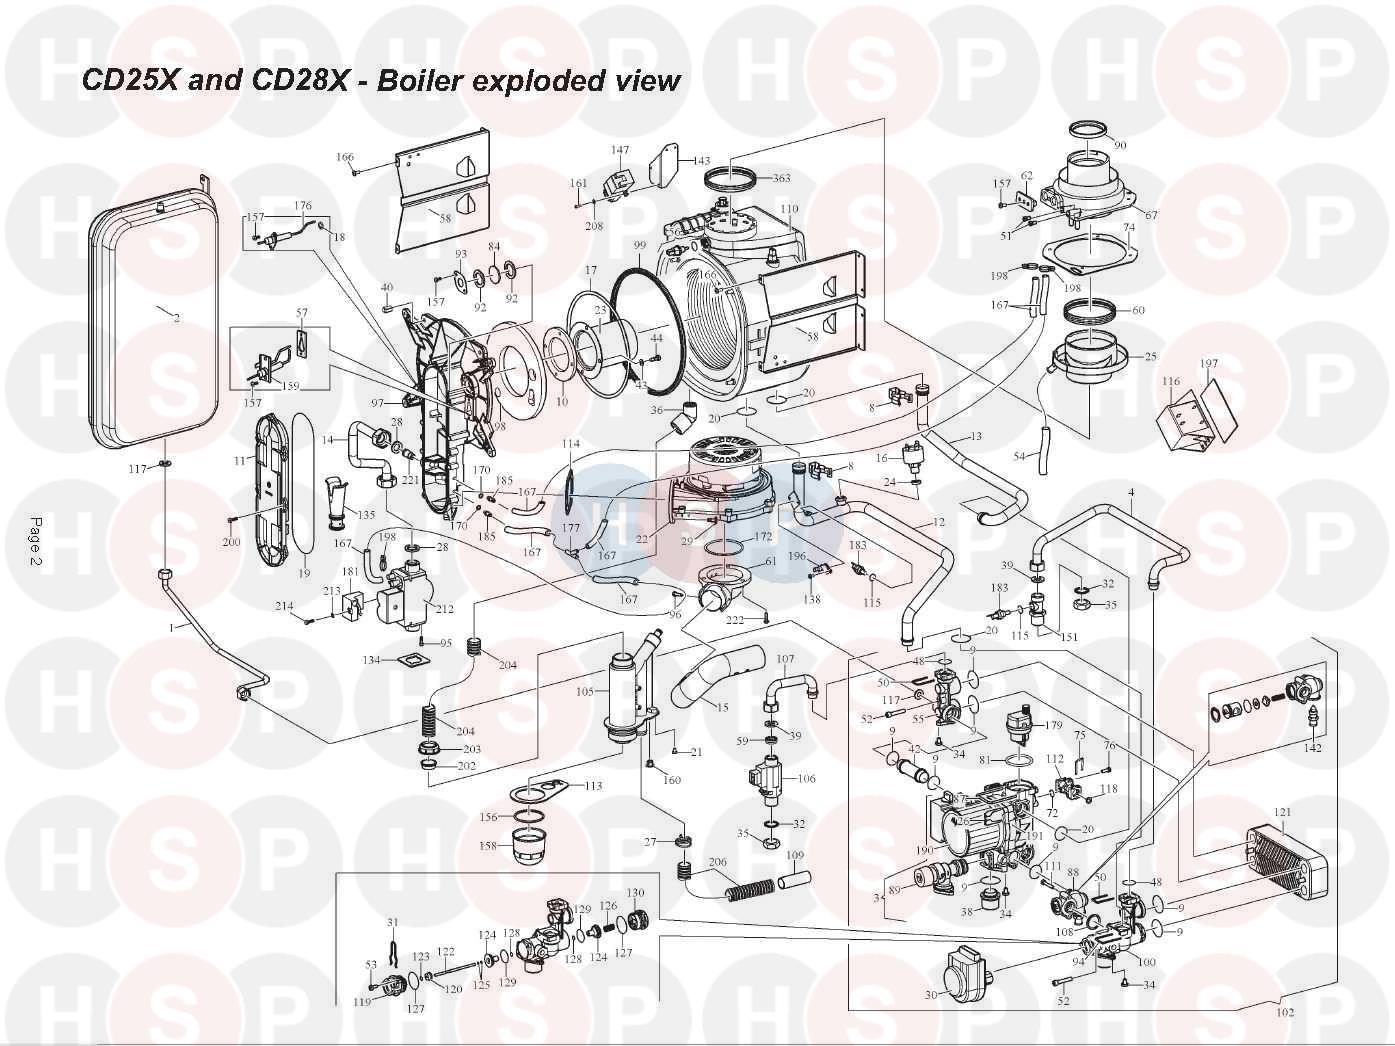 alpha cd28x boiler diagram fan burner heat exchanger heating click the diagram to open it on a new page